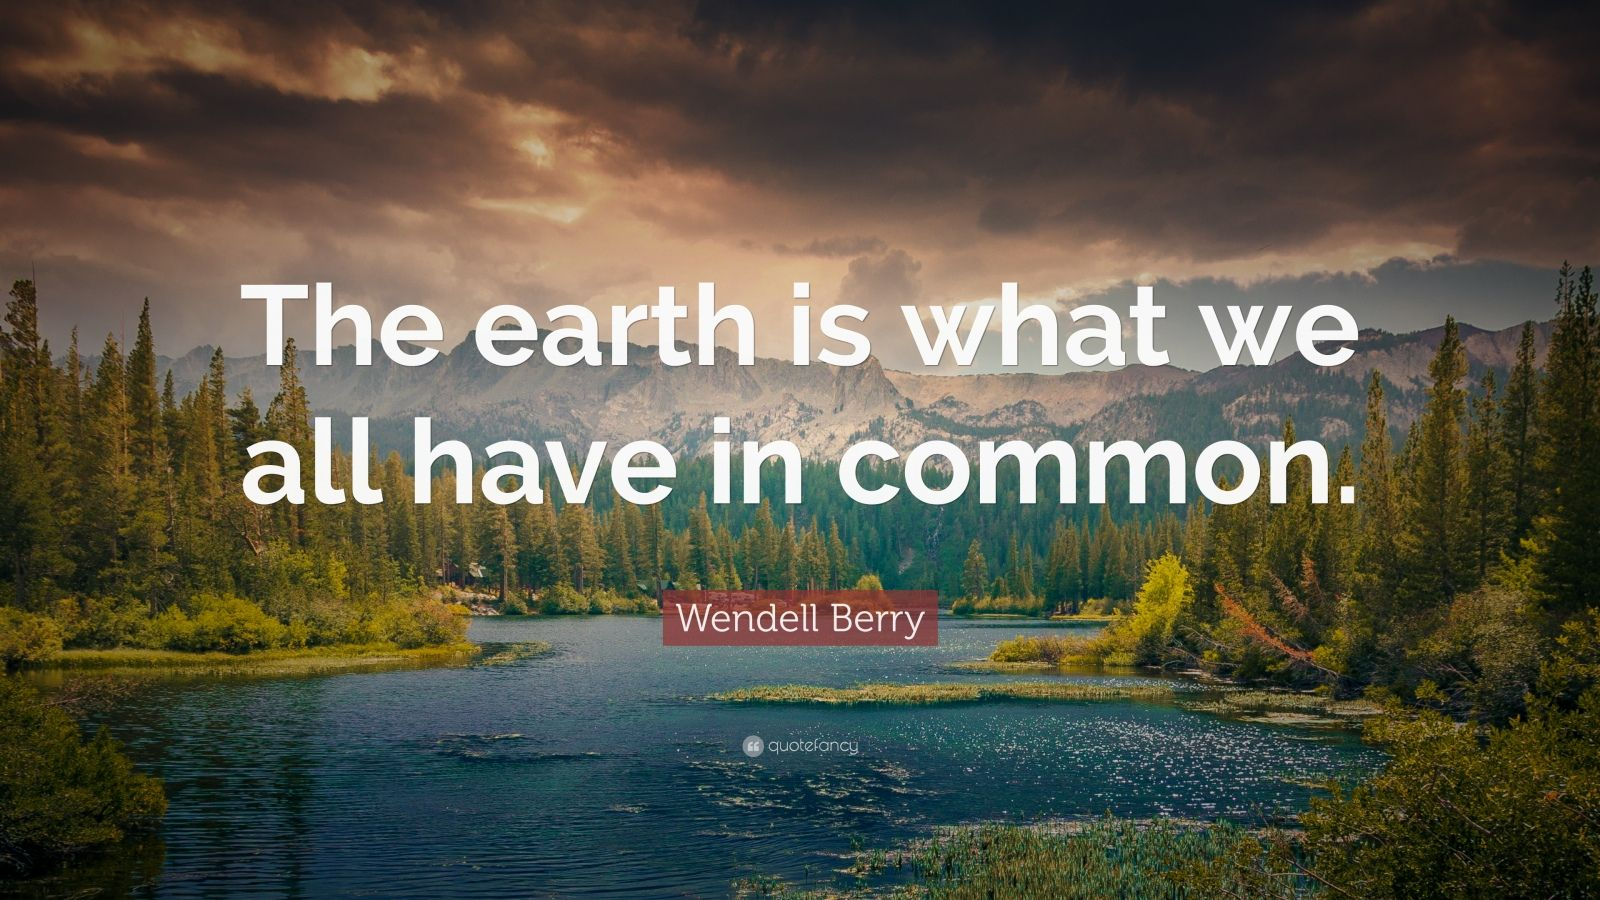 Sadness Wallpaper With Quotes Wendell Berry Quote The Earth Is What We All Have In